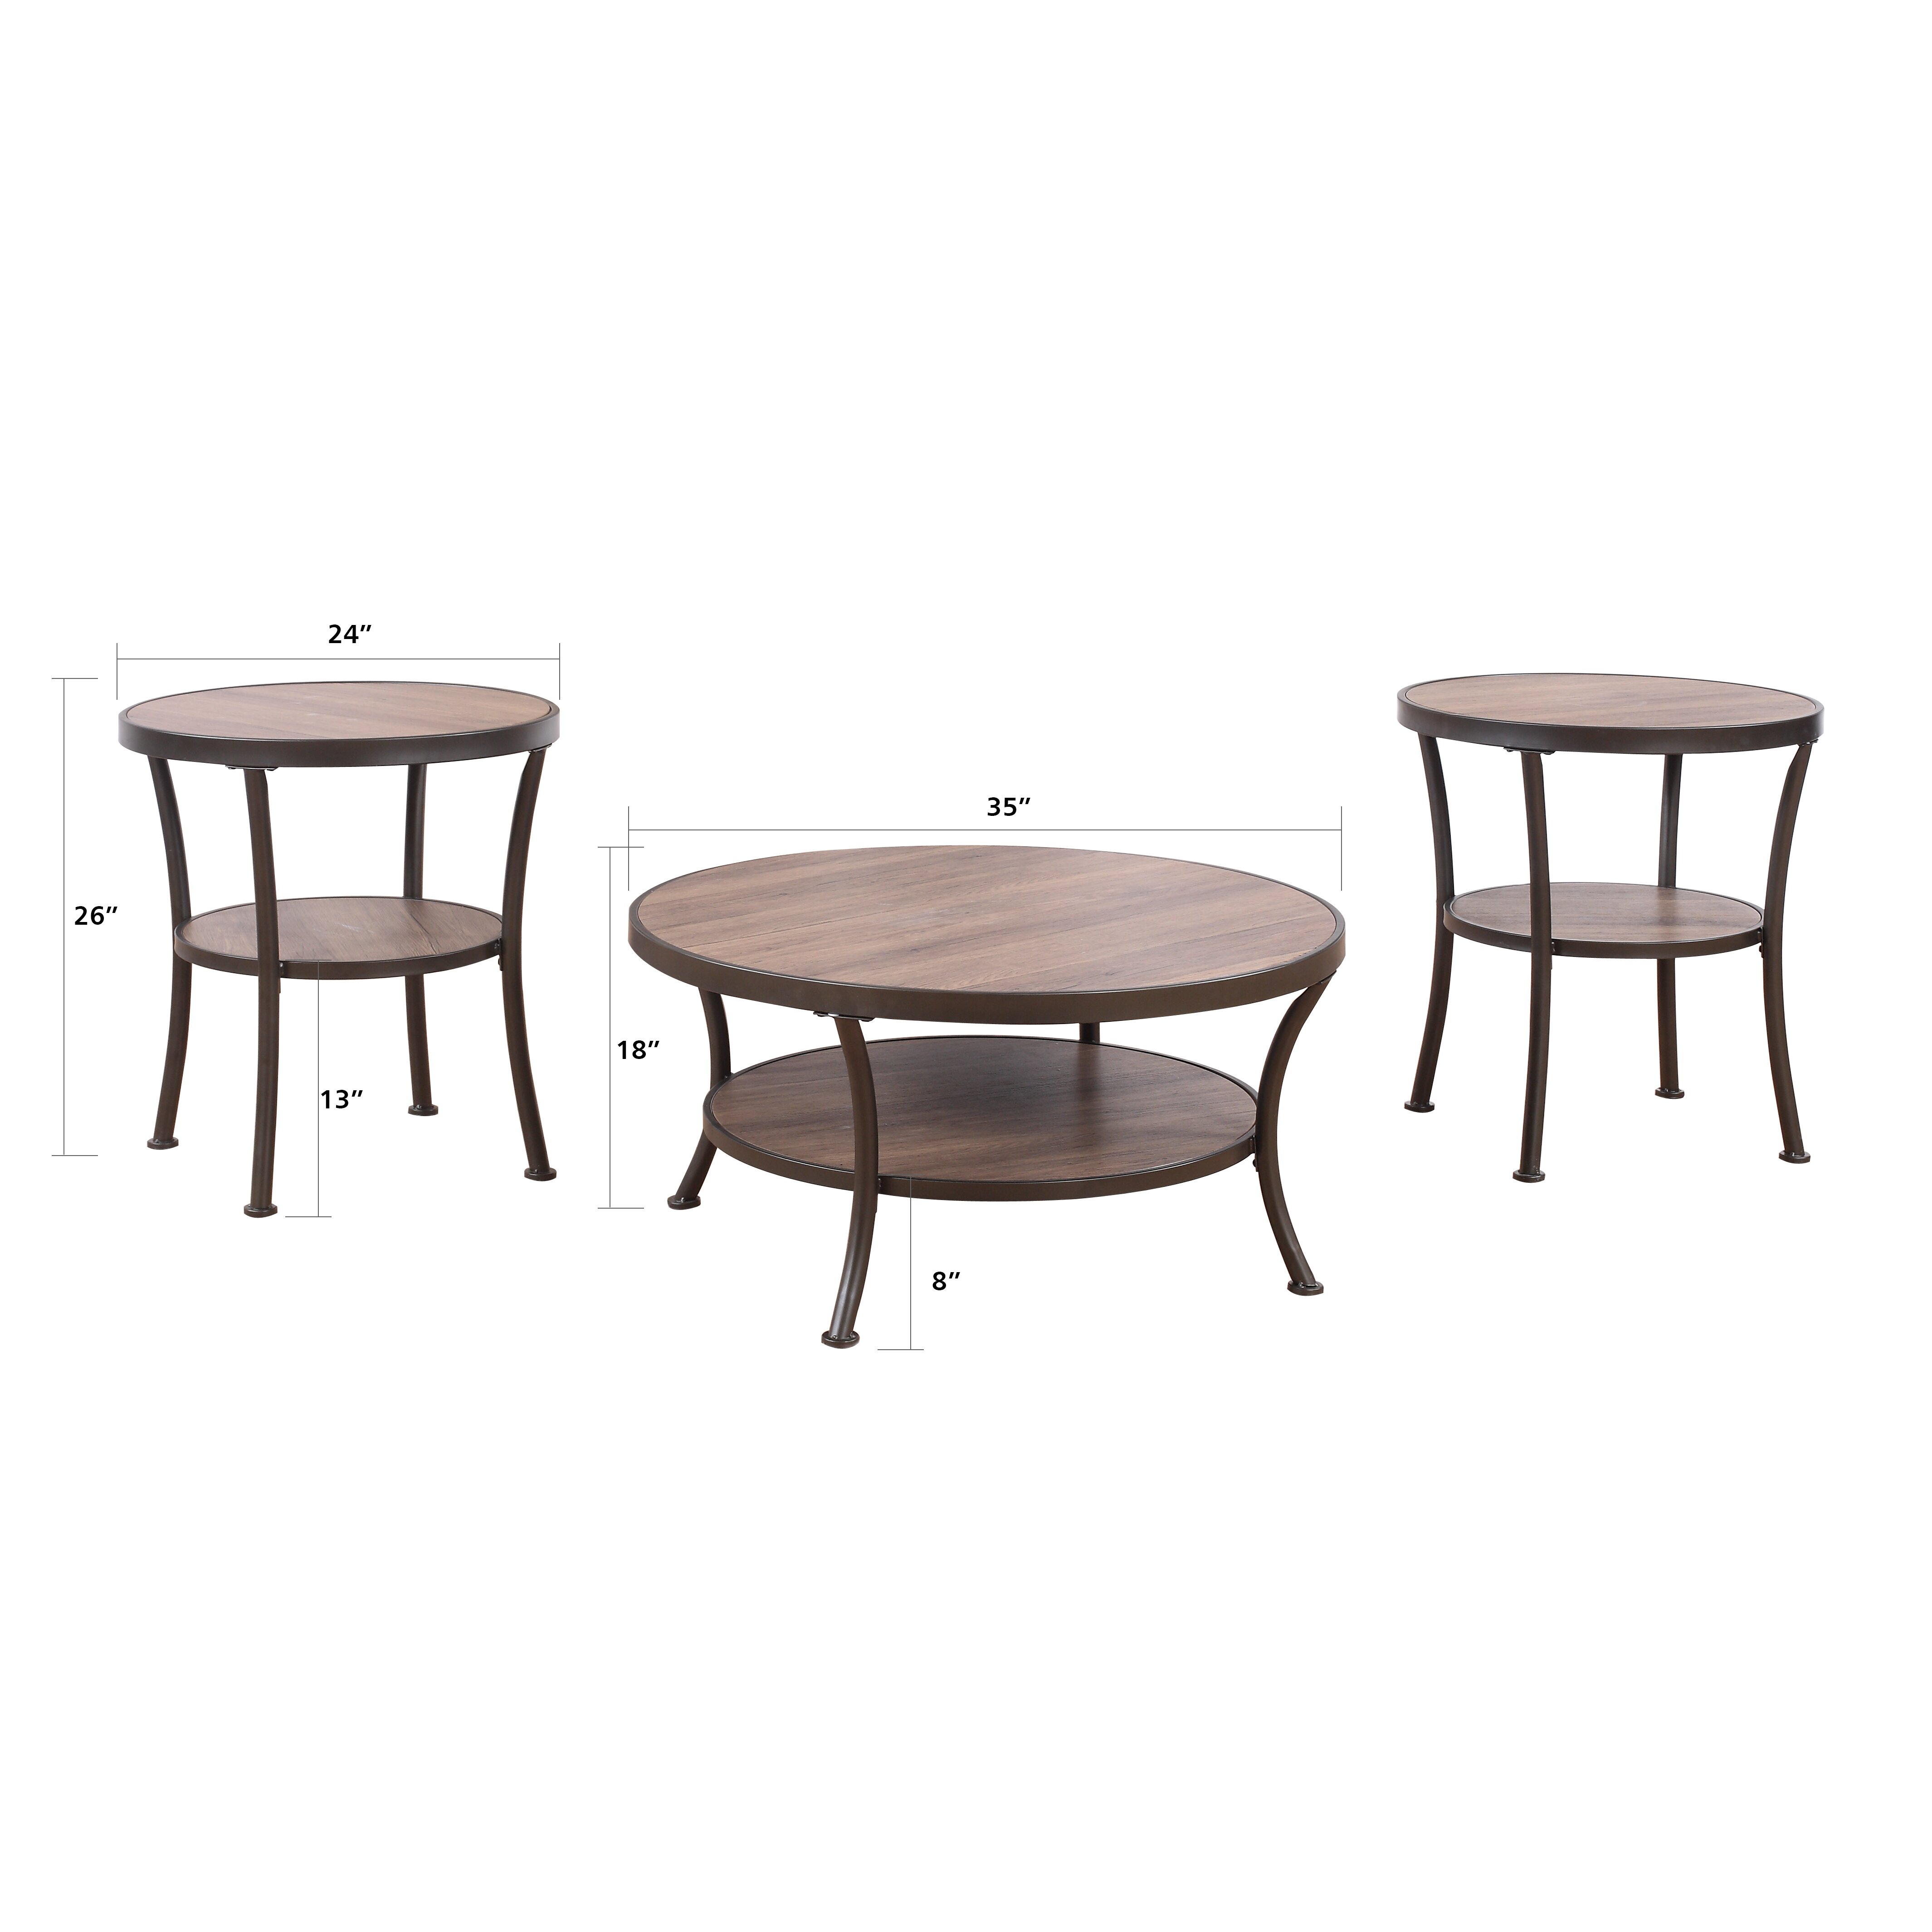 madison home usa 3 piece coffee table and end table set reviews wayfair. Black Bedroom Furniture Sets. Home Design Ideas